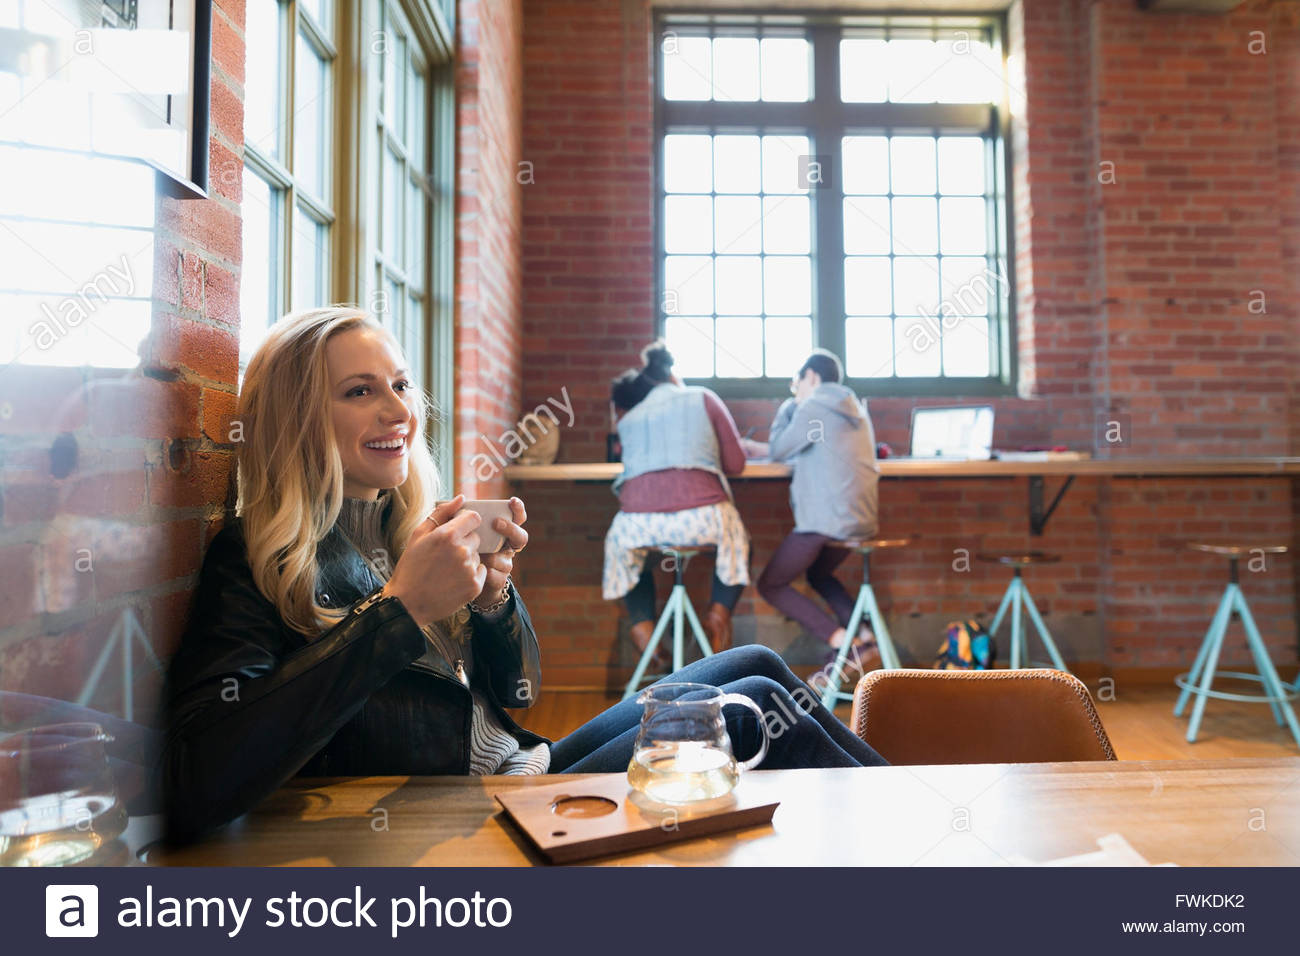 Smiling young woman drinking tea in coffee shop Photo Stock